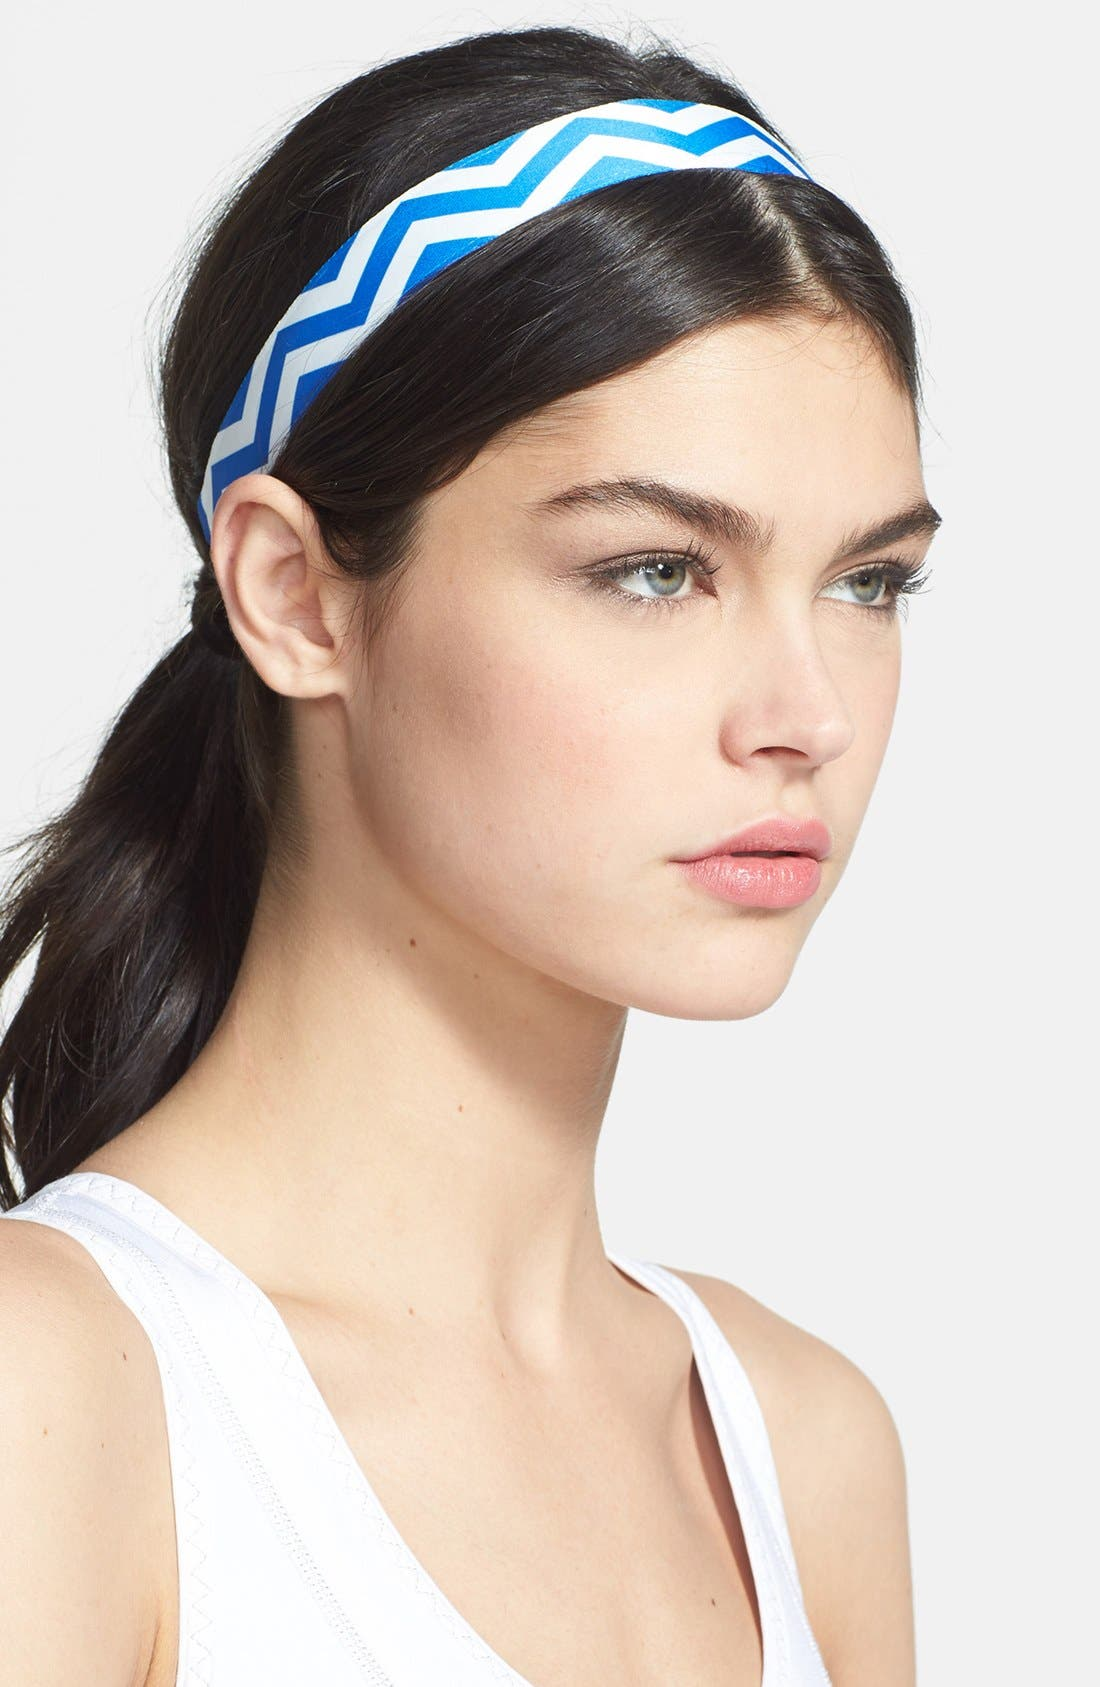 Alternate Image 1 Selected - Sweaty Bands 'Chevron Slide' Head Wrap